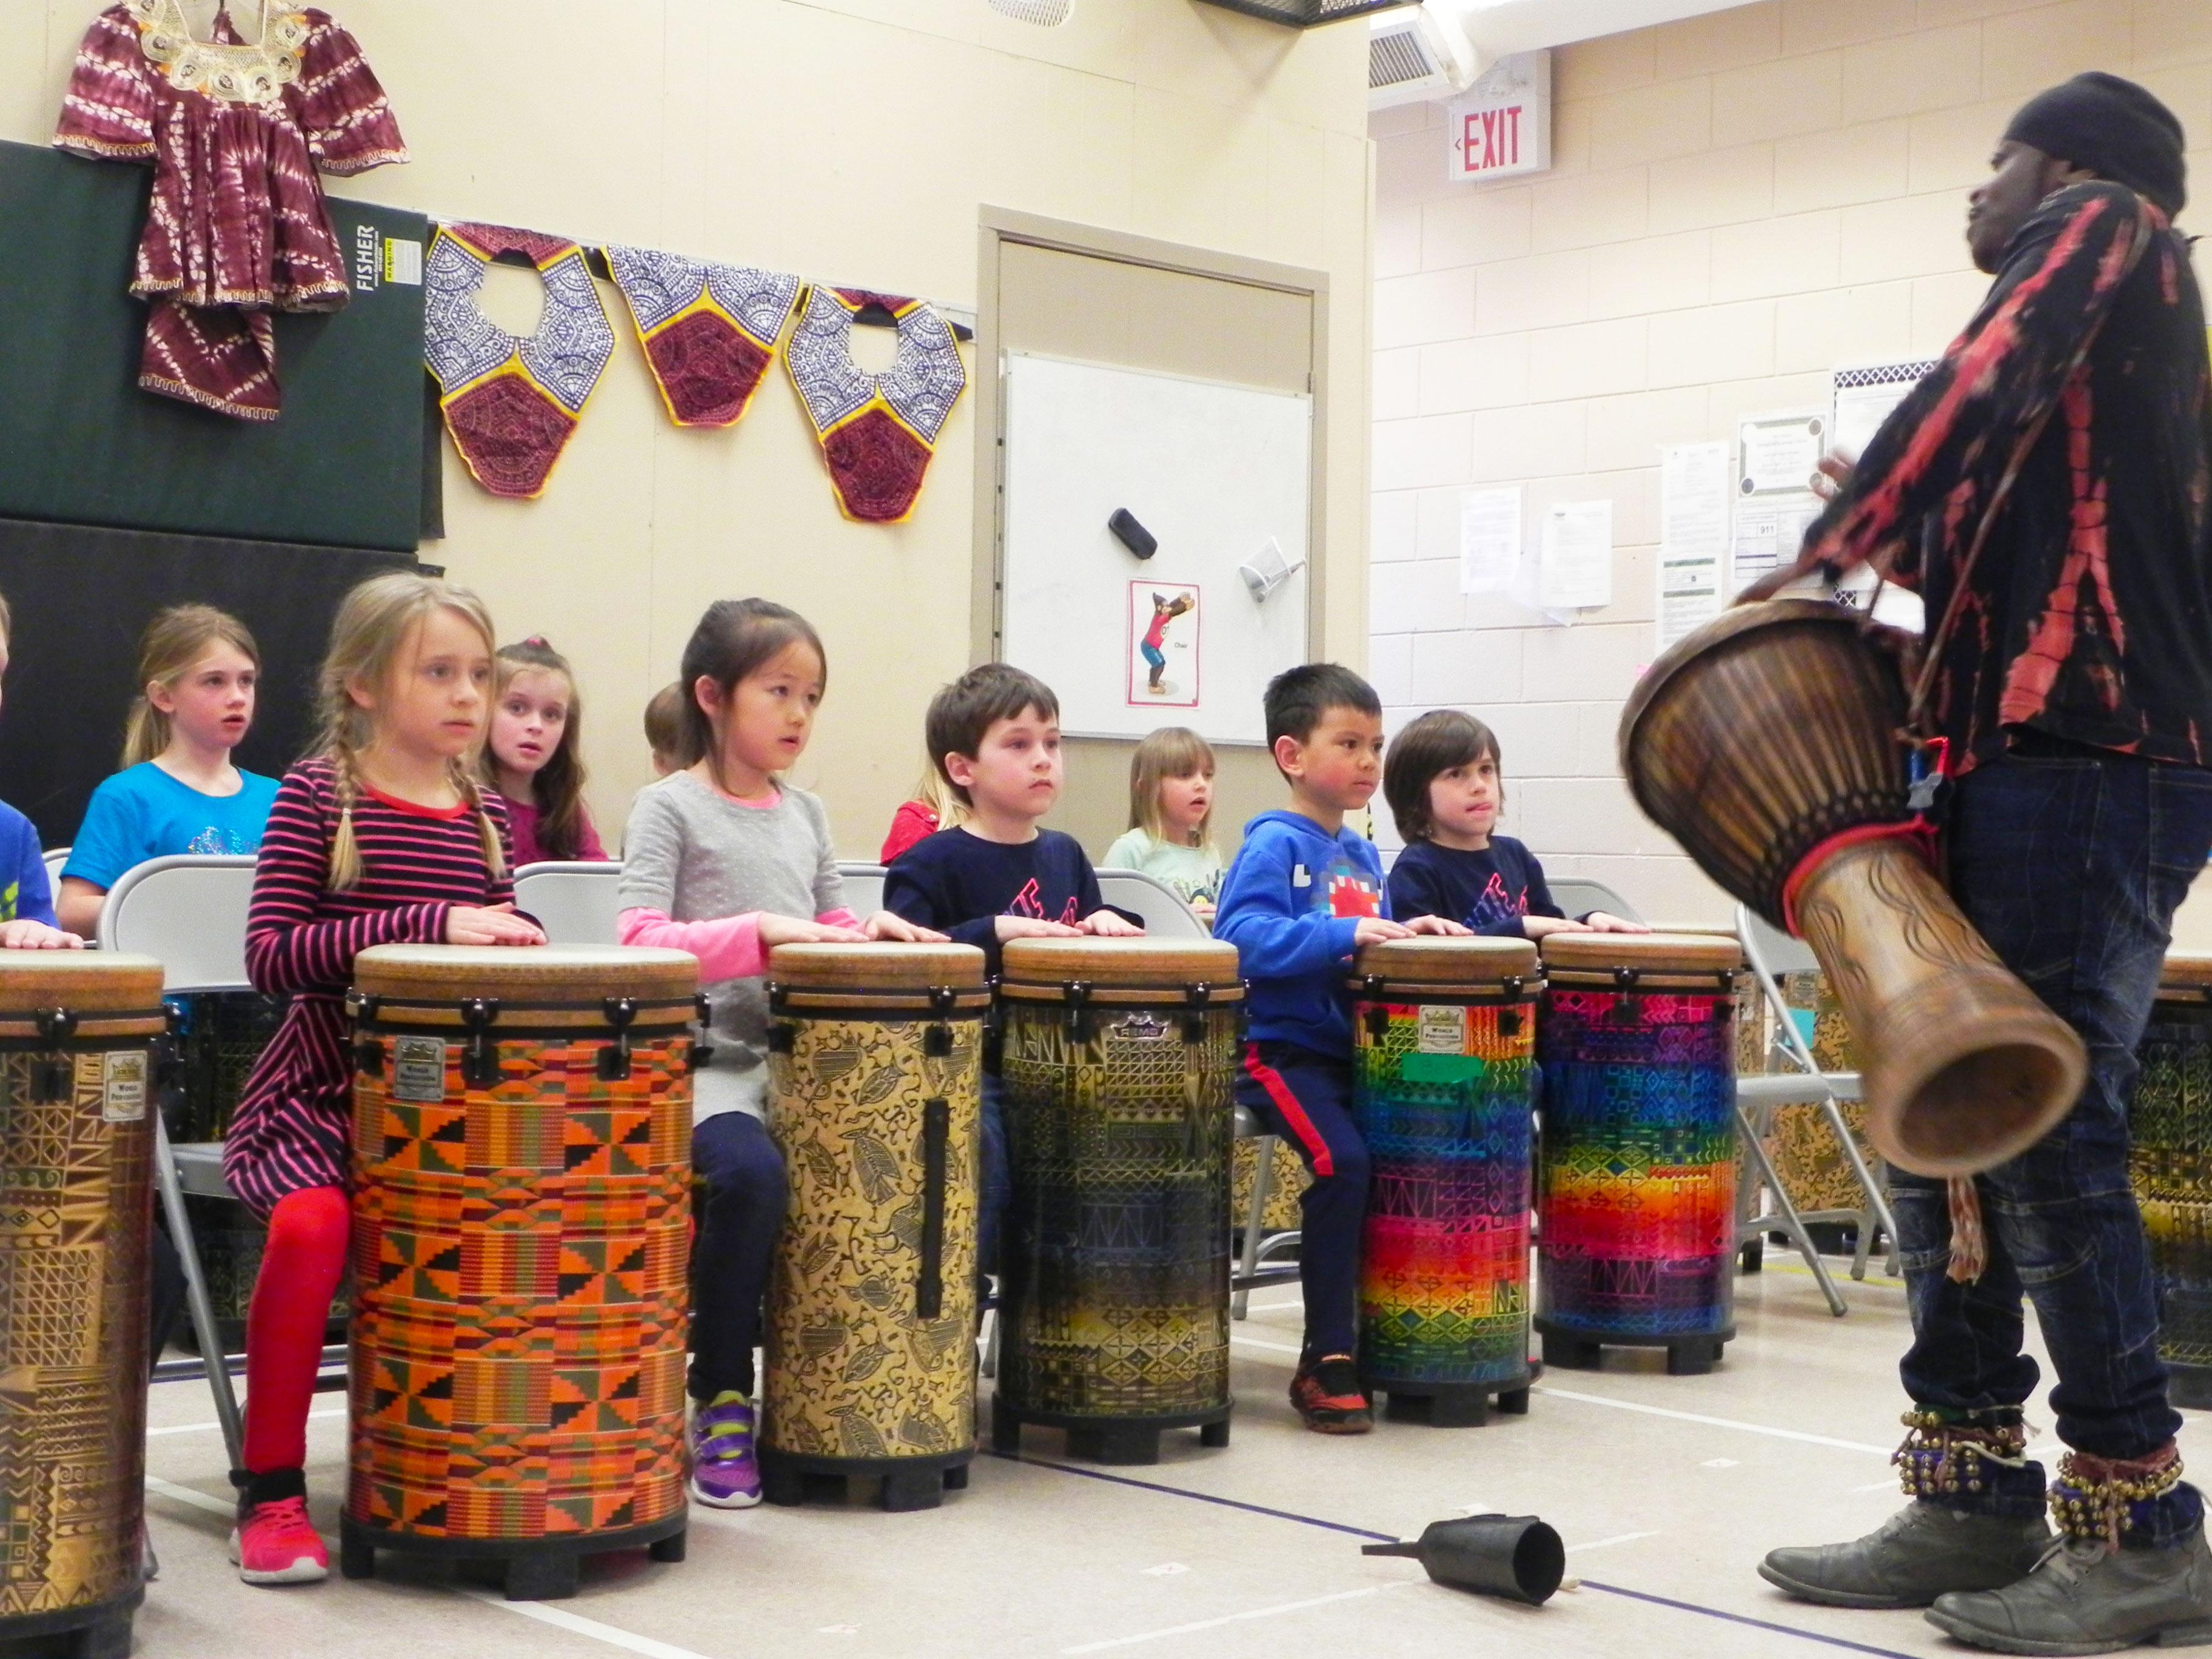 Students drumming.